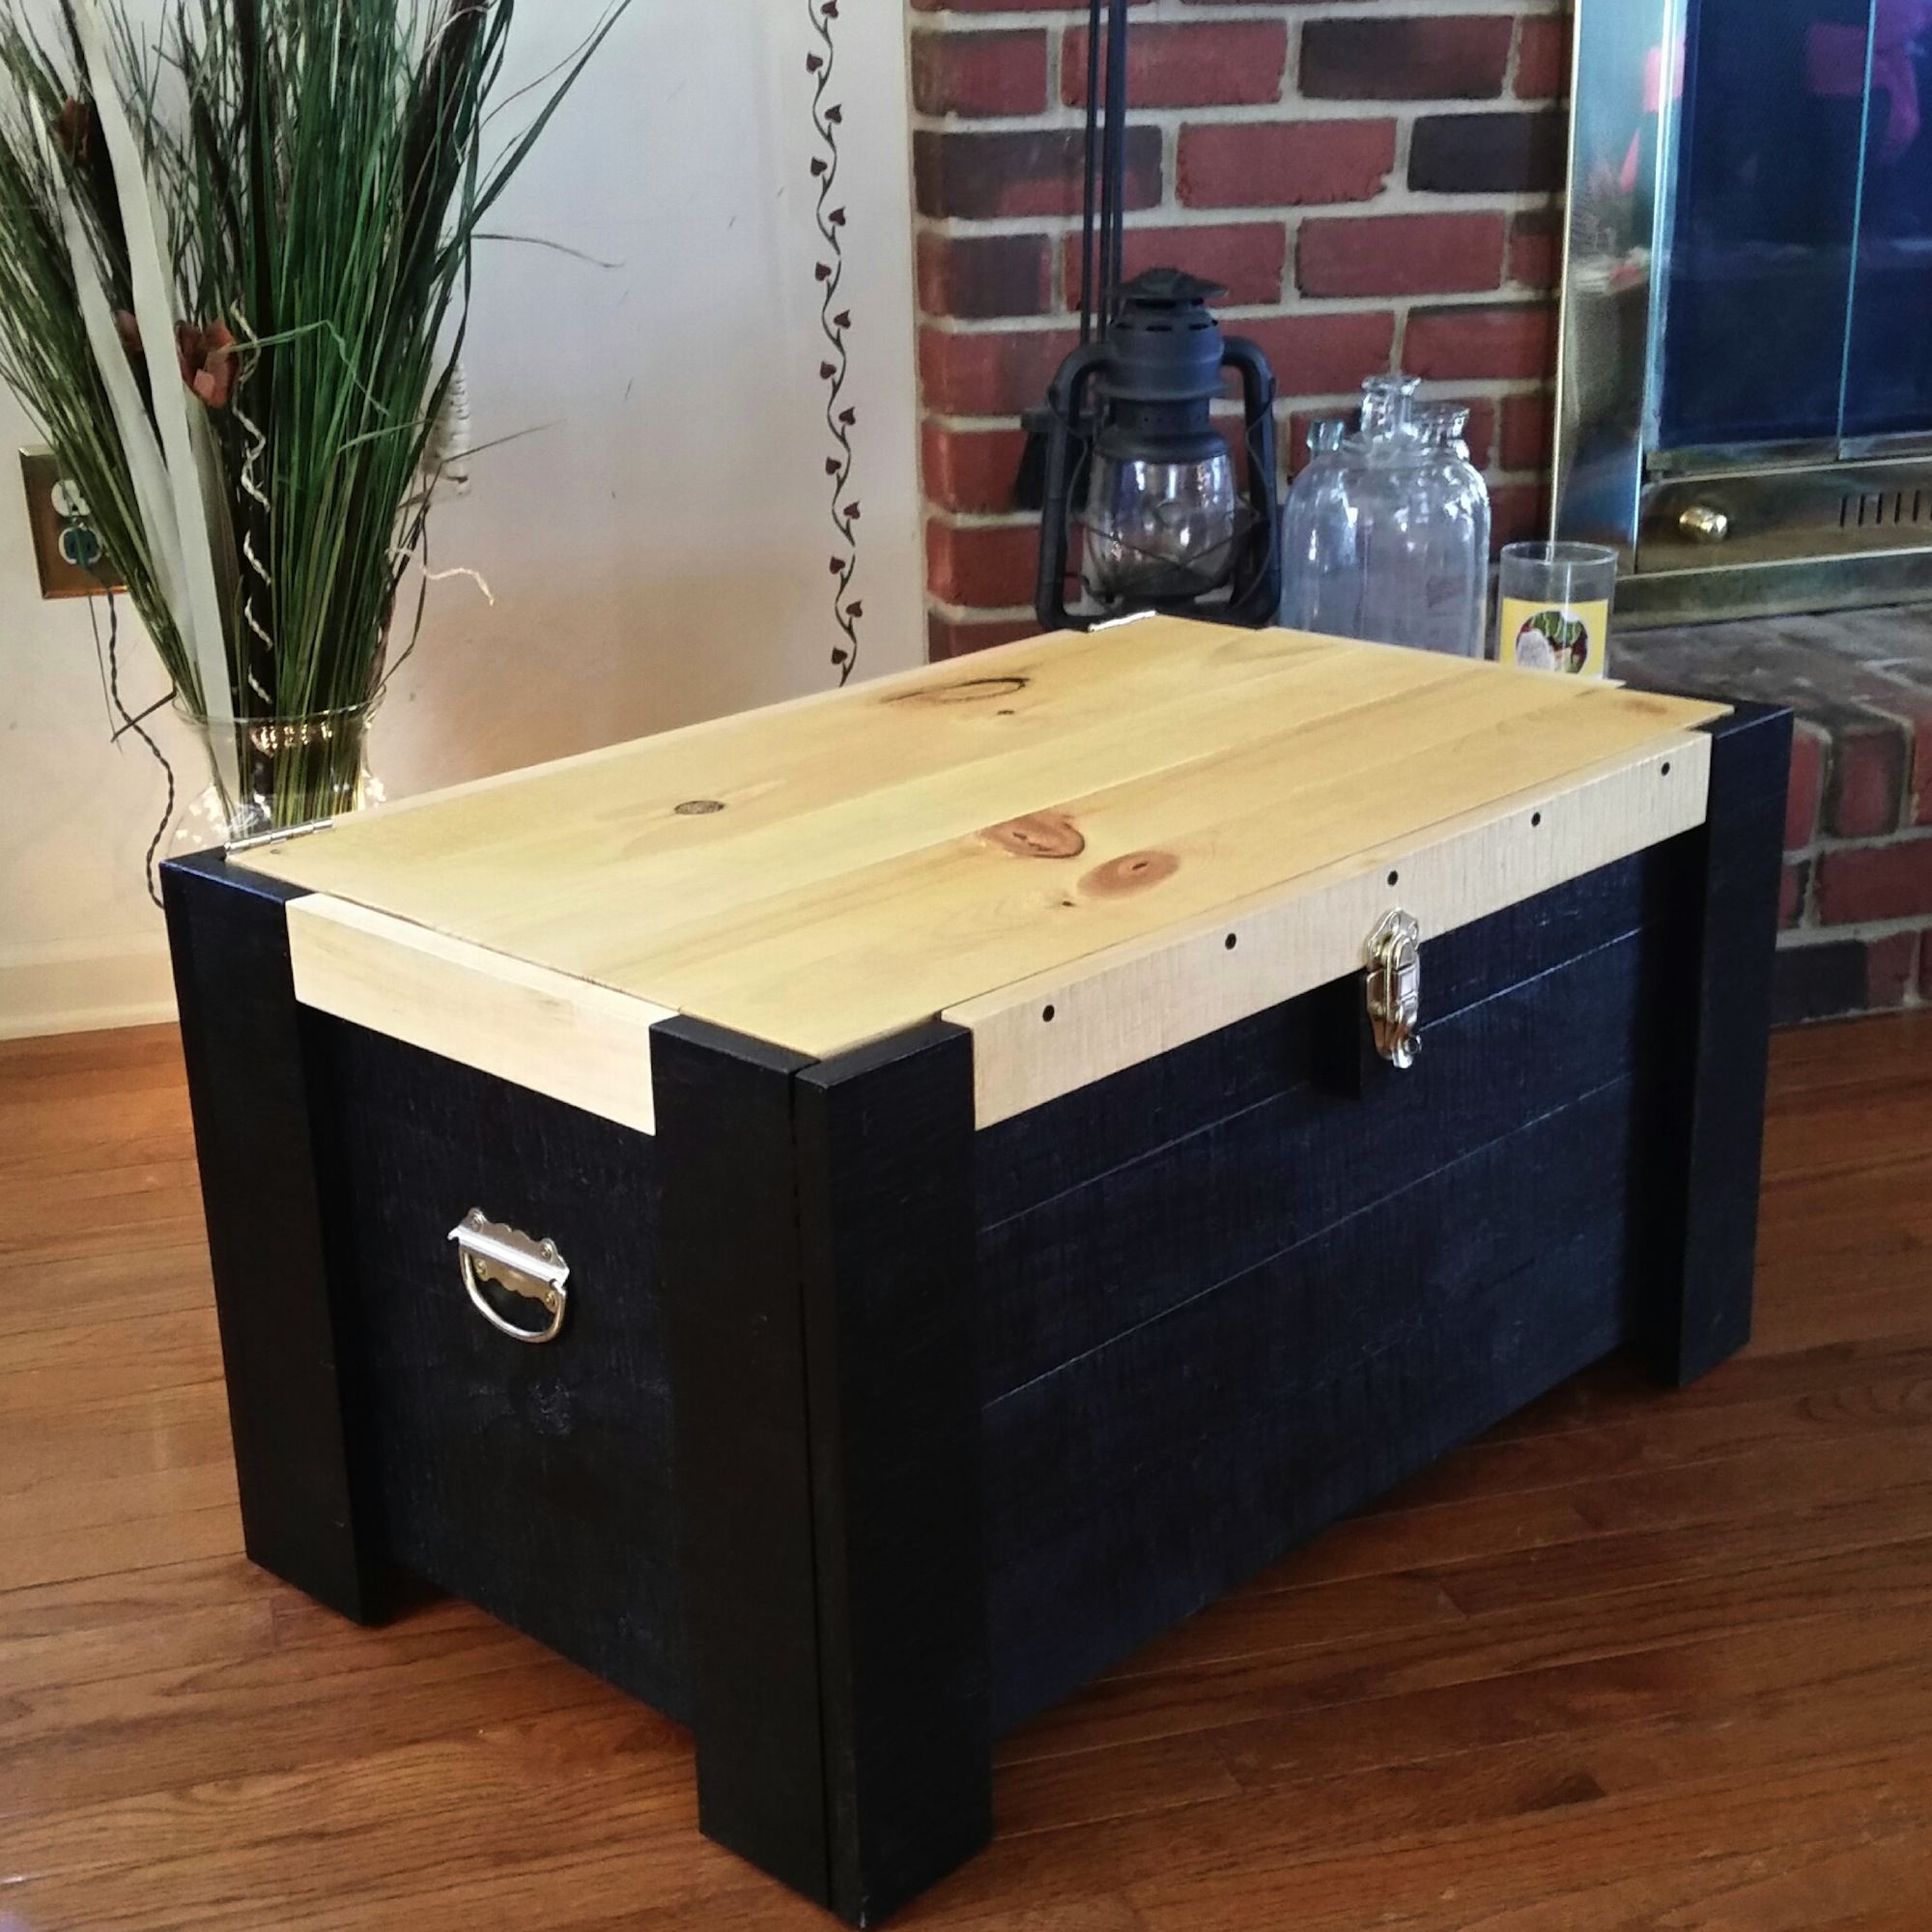 Rough Cutters, 100% handcrafted in America, handcrafted, made in america, handcrafted chests, hand crafts, handcrafted, hand crafted, handcrafted cabinets, unique cabinets, unique fire safety chest, unique toy chest, unique toy chests, custom cabinets, custom toy chest, custom toy chests, custom toy box, toy box, benches, fire safety chest, fire safety chests, toy chest, toy chests, wooden storage chest, unique wooden storage chest, wooden toy chest, wooden toy chests, wooden toy box, unique, contemporary rustic design, contemporary rustic, beauty and function, home decor, custom home decor, home decor near me, home decor barto pa, unique home decor, unique home decor near me, unique home decor barto pa, custom home decor near me, custom home decor barto pa, laser engraving options, laser engraving, custom engraving, custom laser engraving, laser engraving near me, laser engraving barto pa, custom engraving barto pa, custom laser engraving barto pa, custom chests, custom chest sizes, flip top benches, open front benches, woodworking, custom woodworking, woodworker, woodworker near me, woodworker barto pa, custom woodworking near me, custom woodworking barto pa, furniture, custom furniture, custom furniture near me, custom furniture barto pa